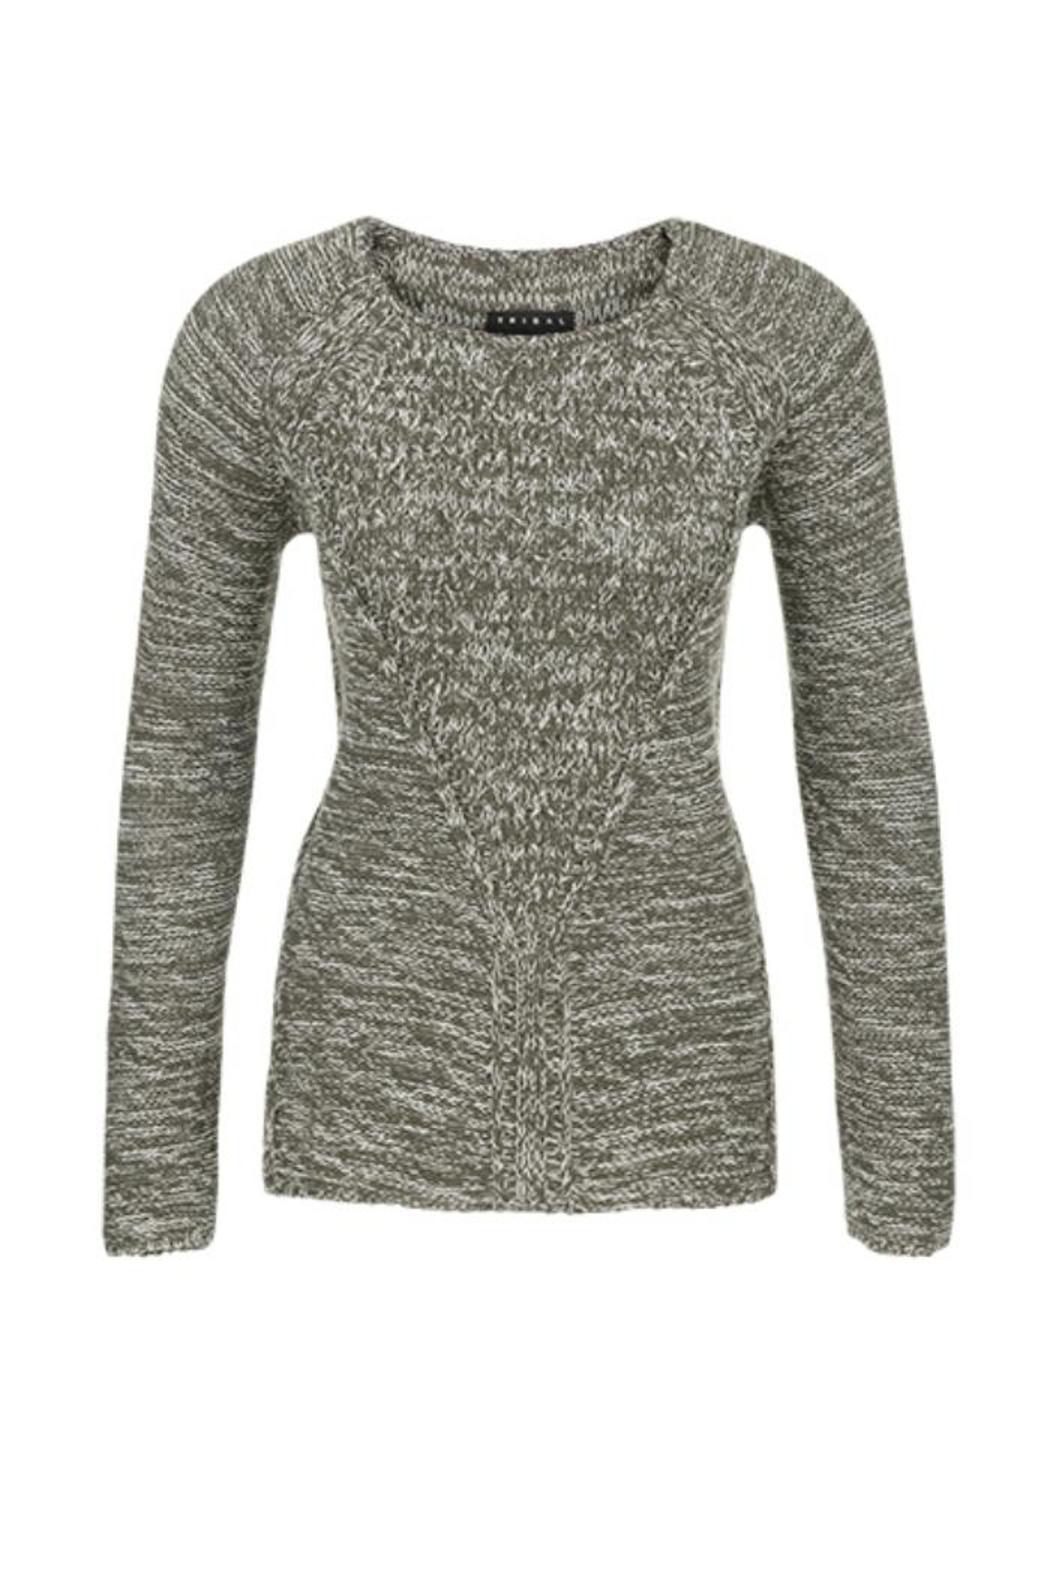 Tribal Sportswear Cypress Raglan Sweater - Main Image